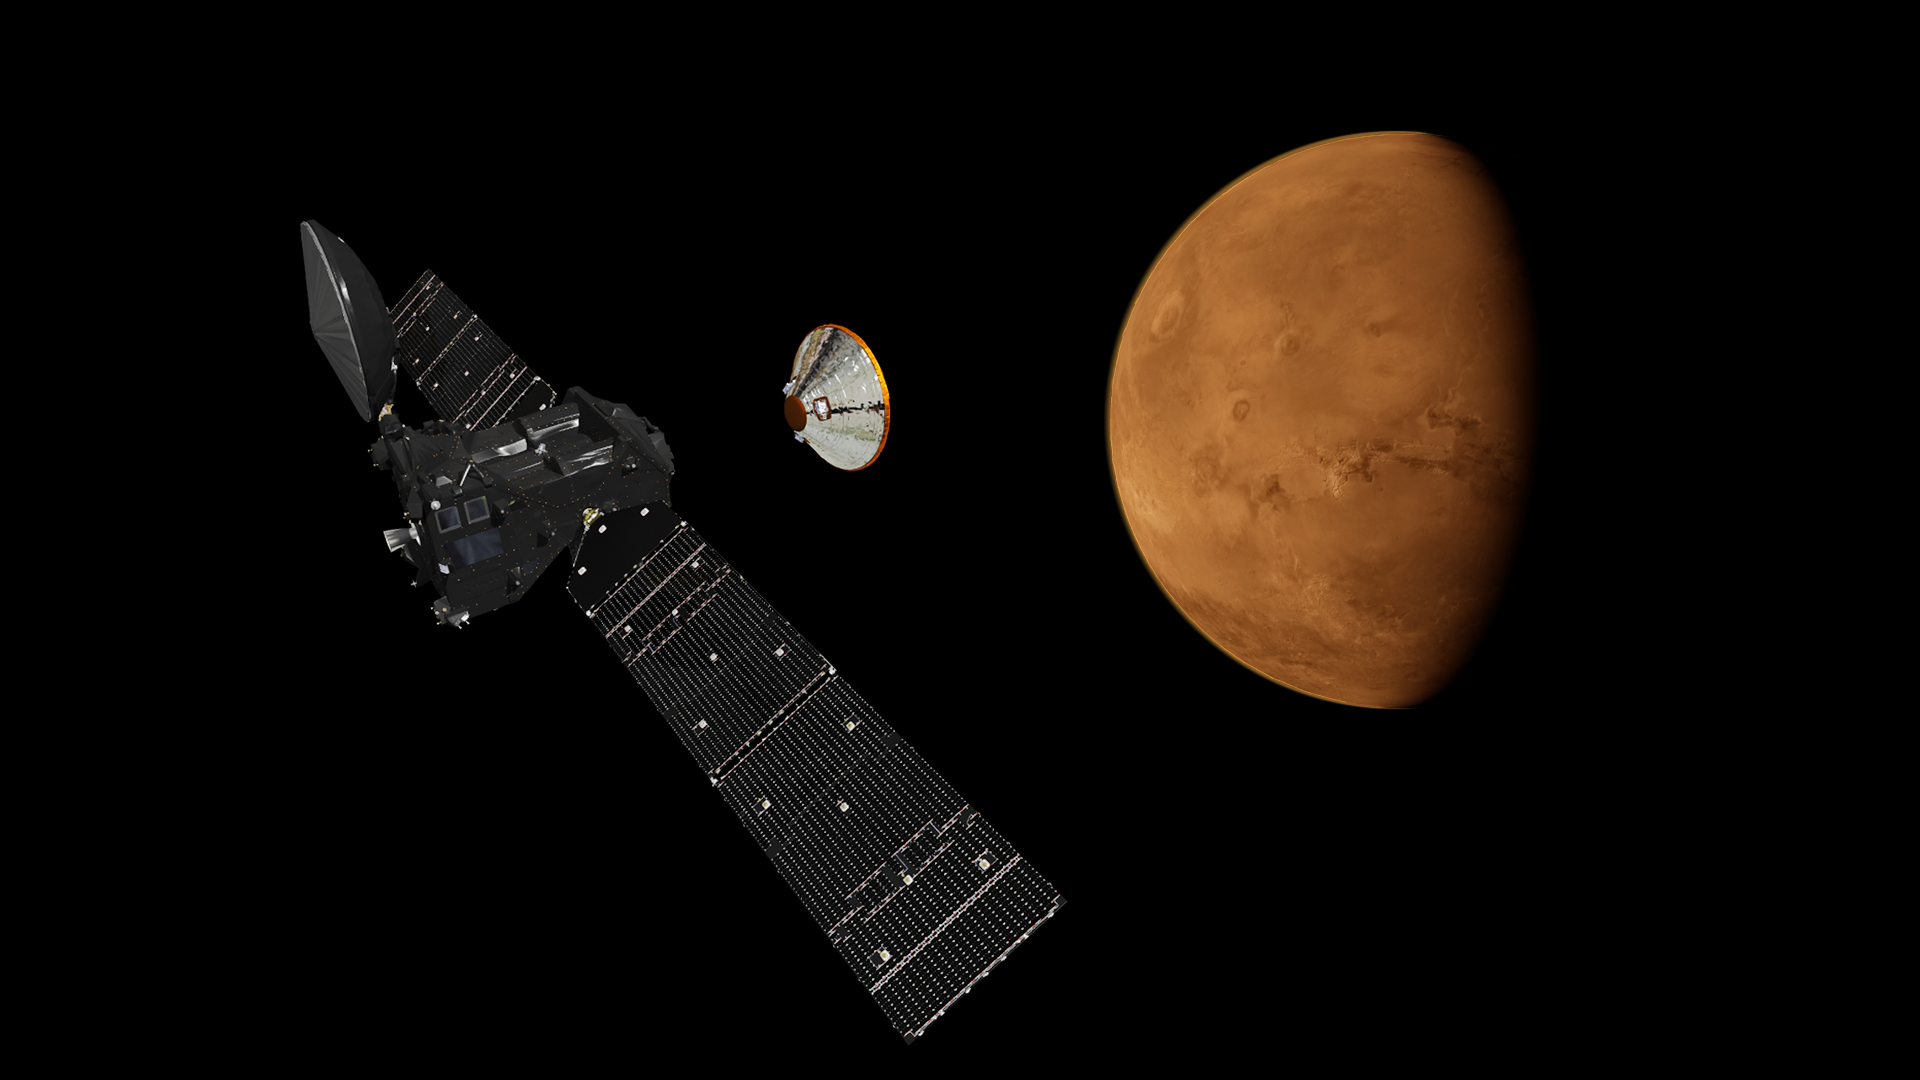 ExoMars Mission 2016, EDM and TGO separation